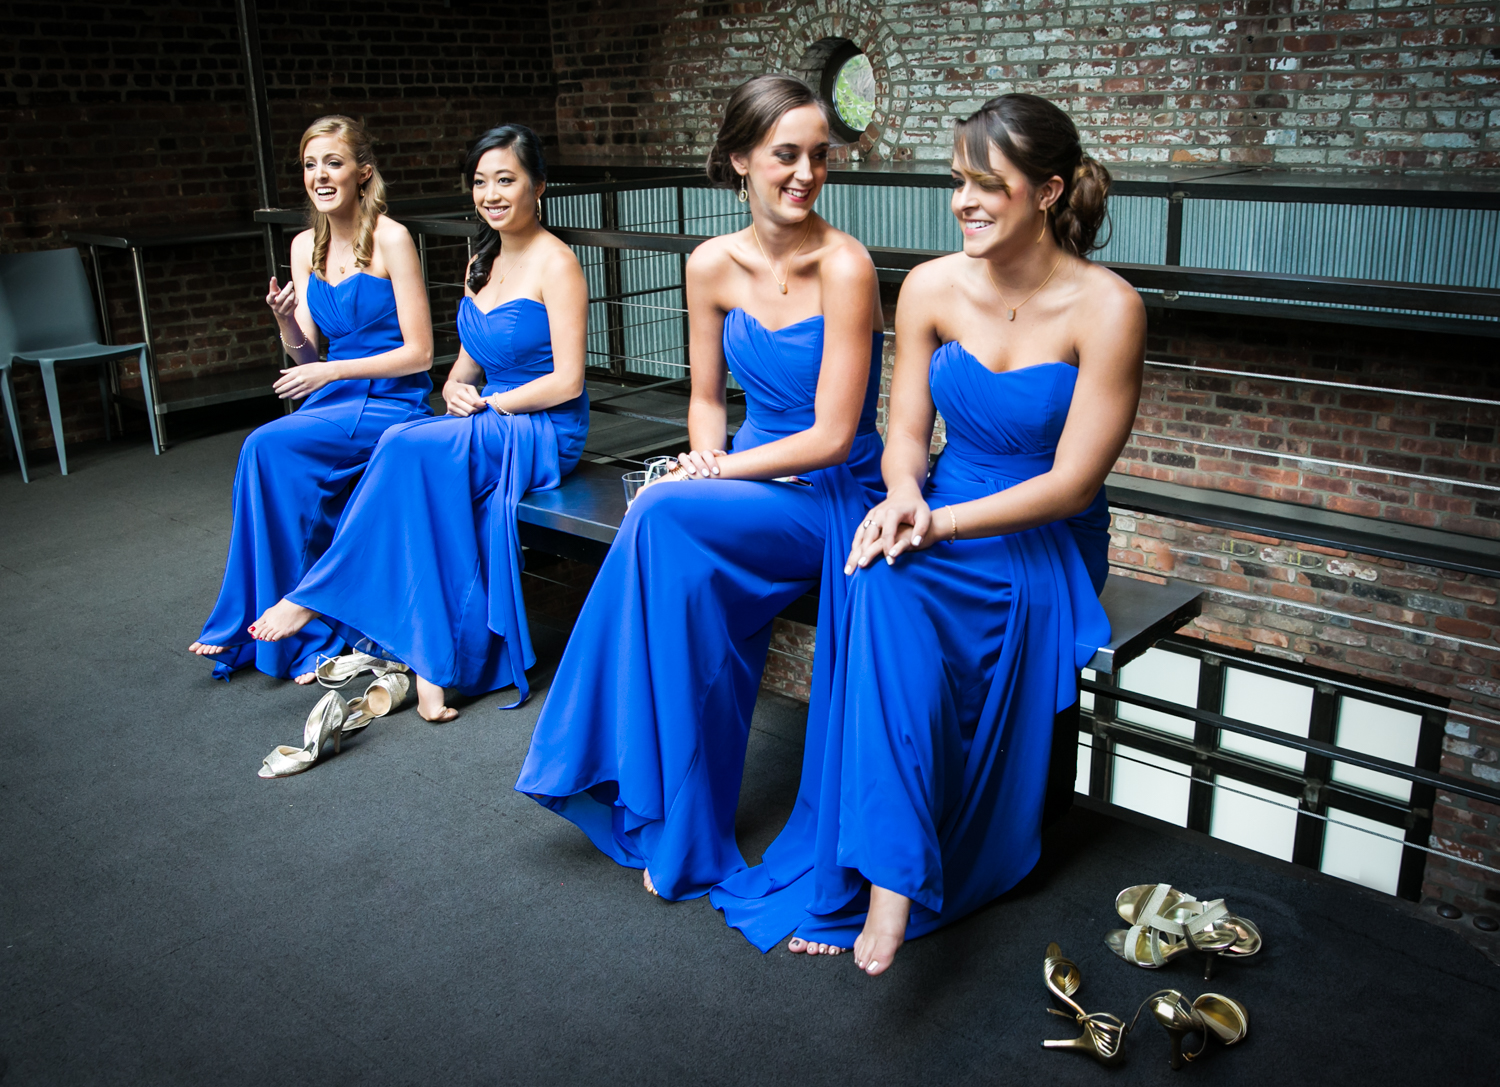 Bridesmaids wearing blue dresses and sitting on bench